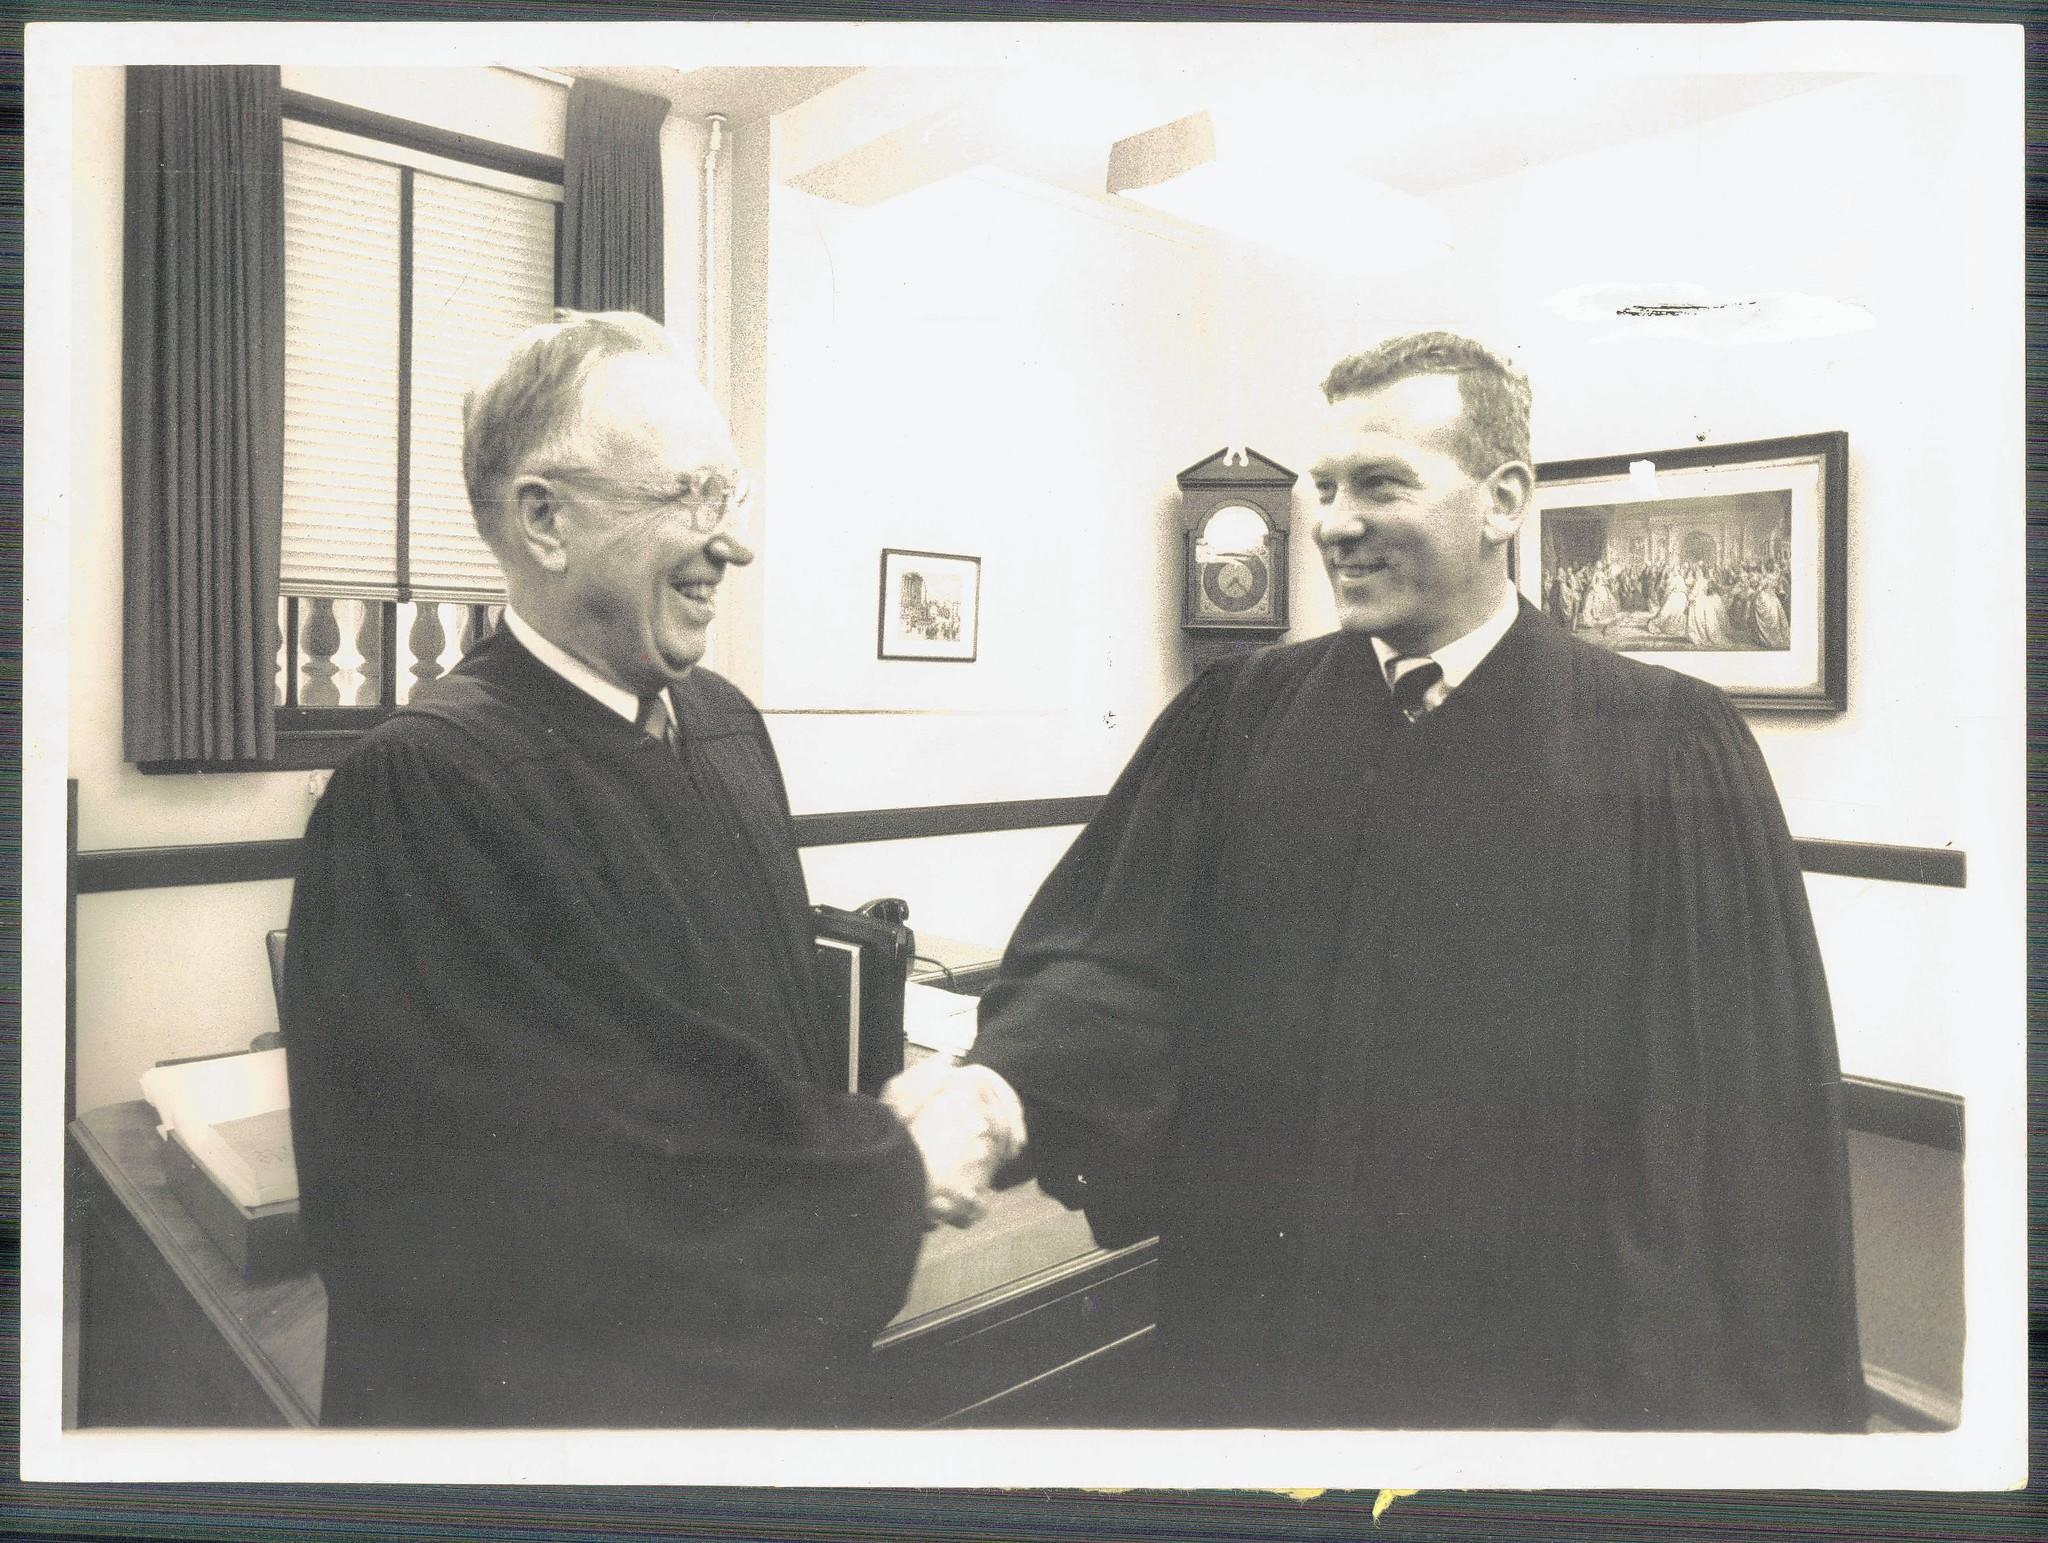 Judge Roszel C Thomsen (left) shakes the hand of Judge James R Miller Jr. after he was sworn in. Judge MIller, who died in June, was a judge in Baltimore for 15 years.